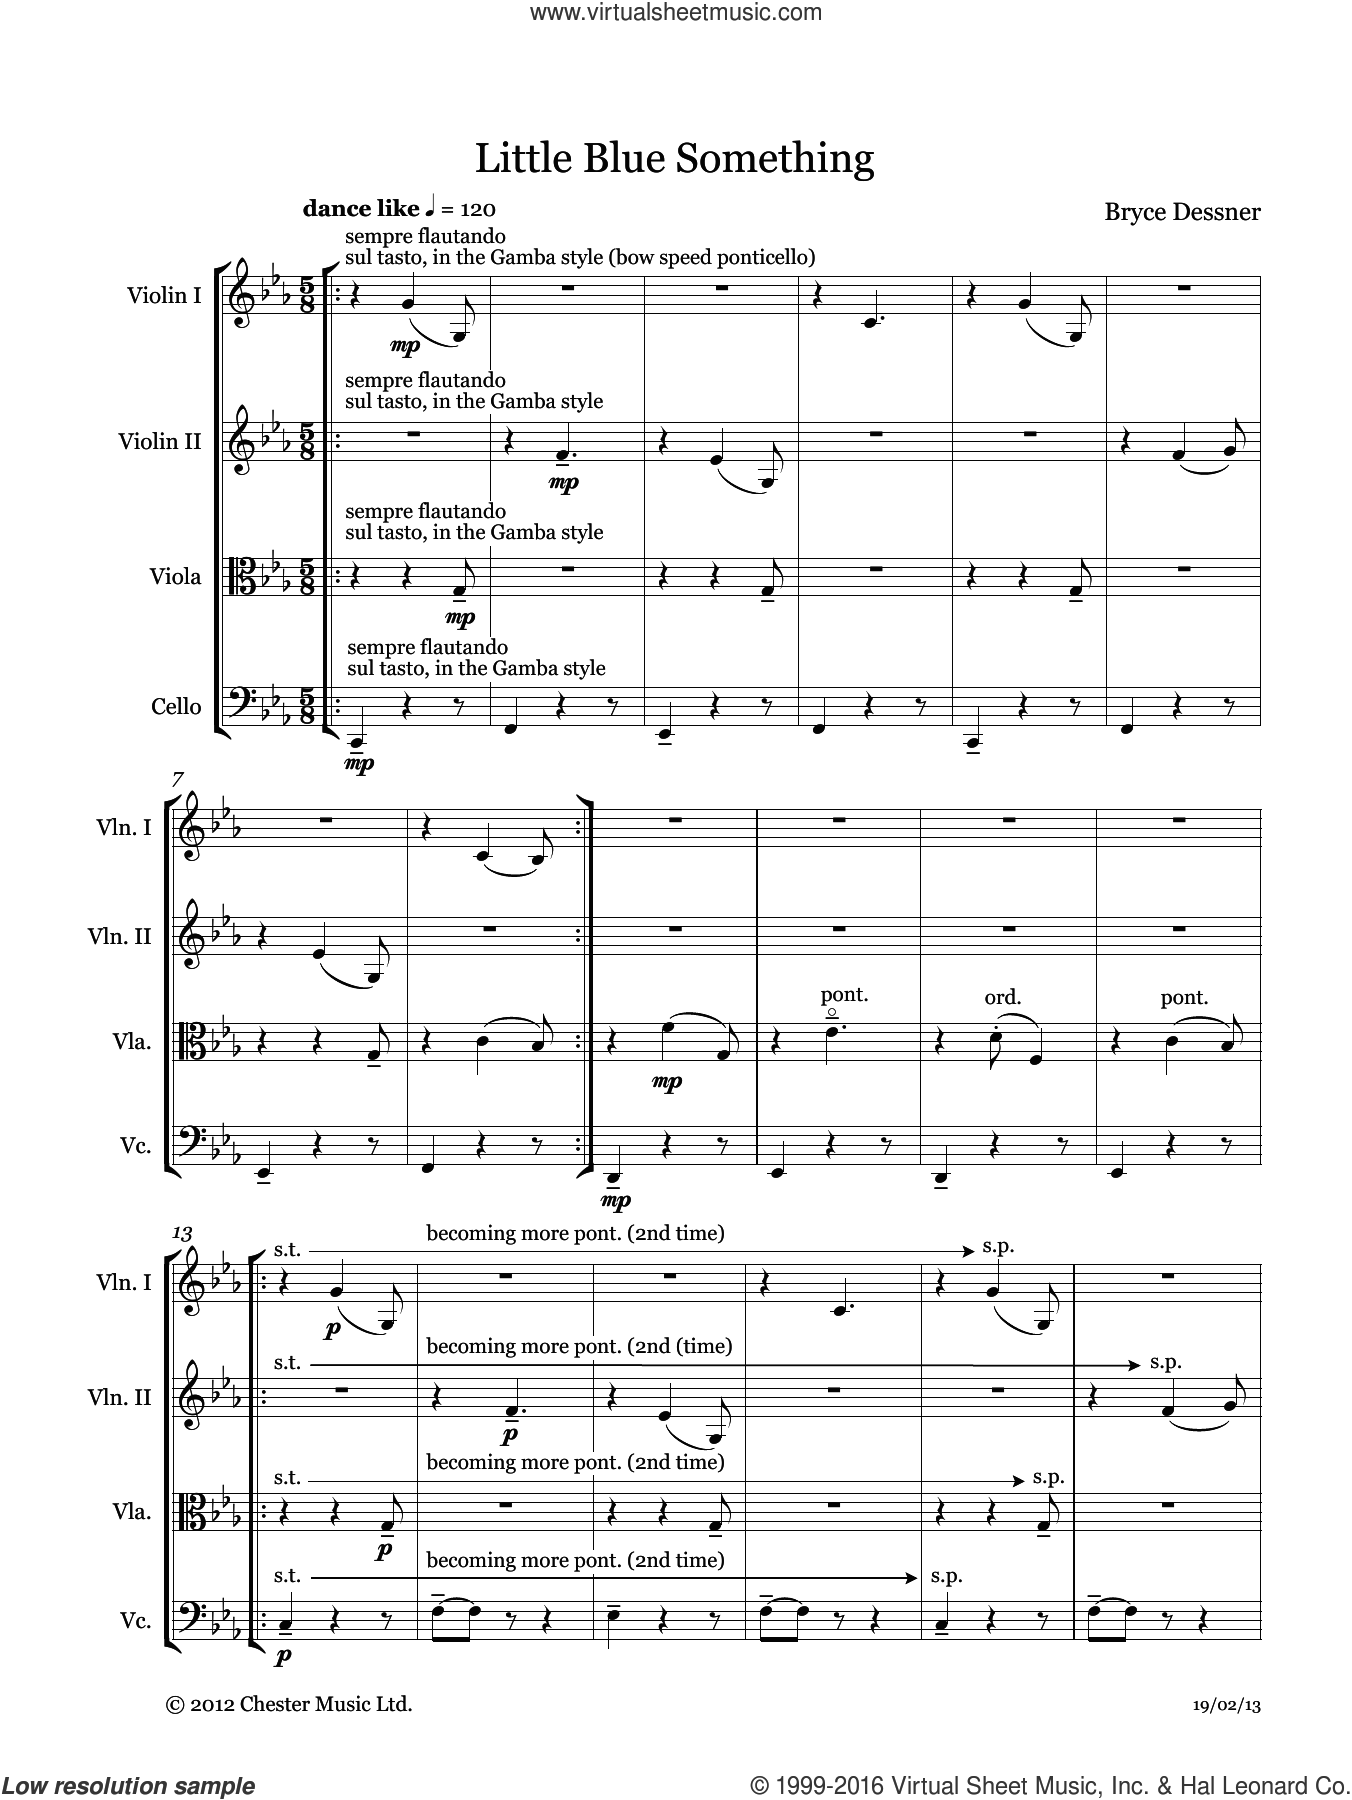 Little Blue Something (String quartet score and parts) sheet music for string orchestra by Bryce Dessner. Score Image Preview.